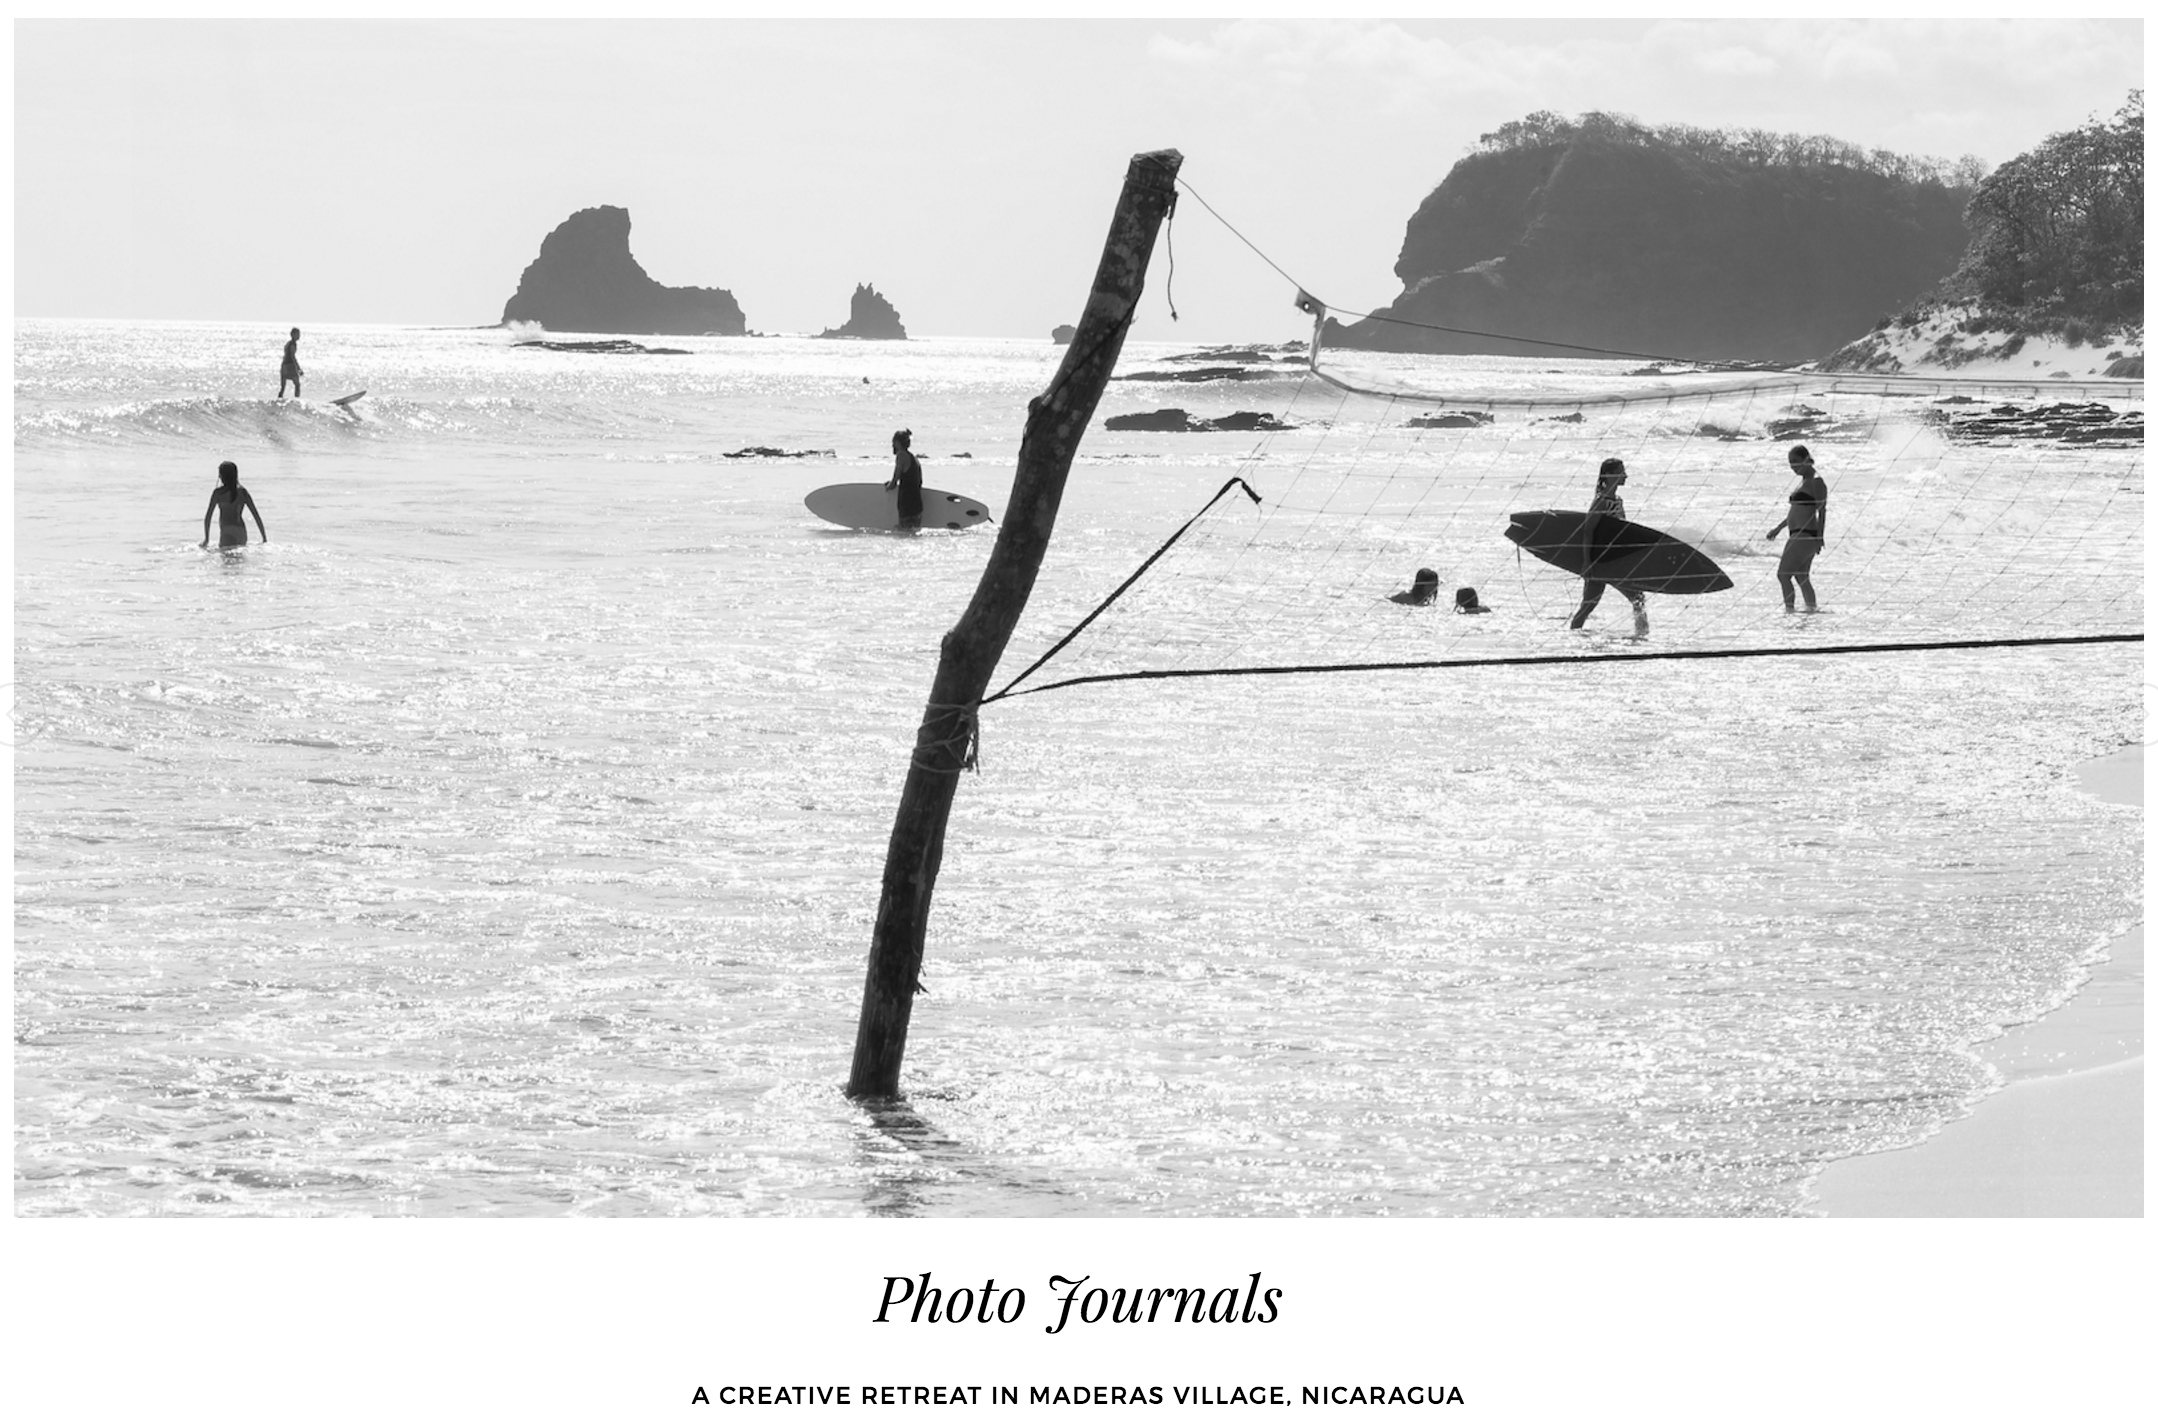 Brad Torchia is an LA-based editorial and commercial photographer. Nicaragua TravelGallery